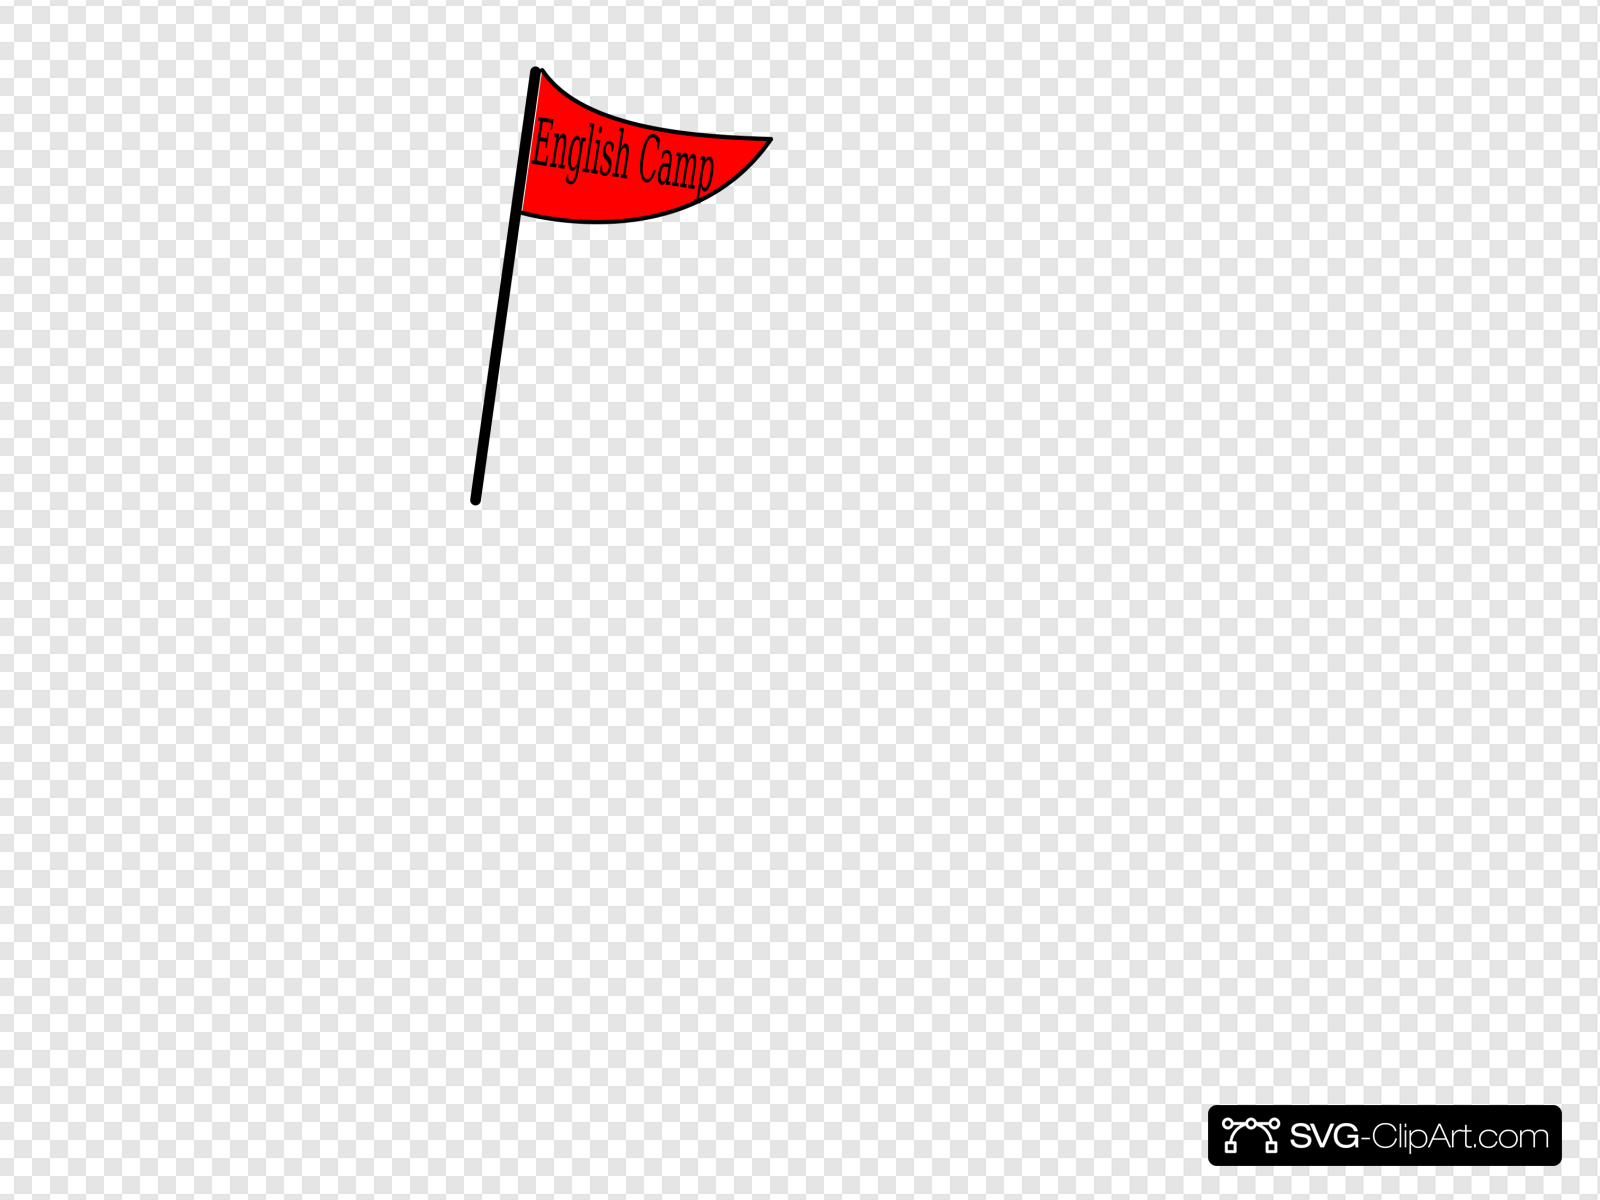 Red Flag English Camp Clip art, Icon and SVG.